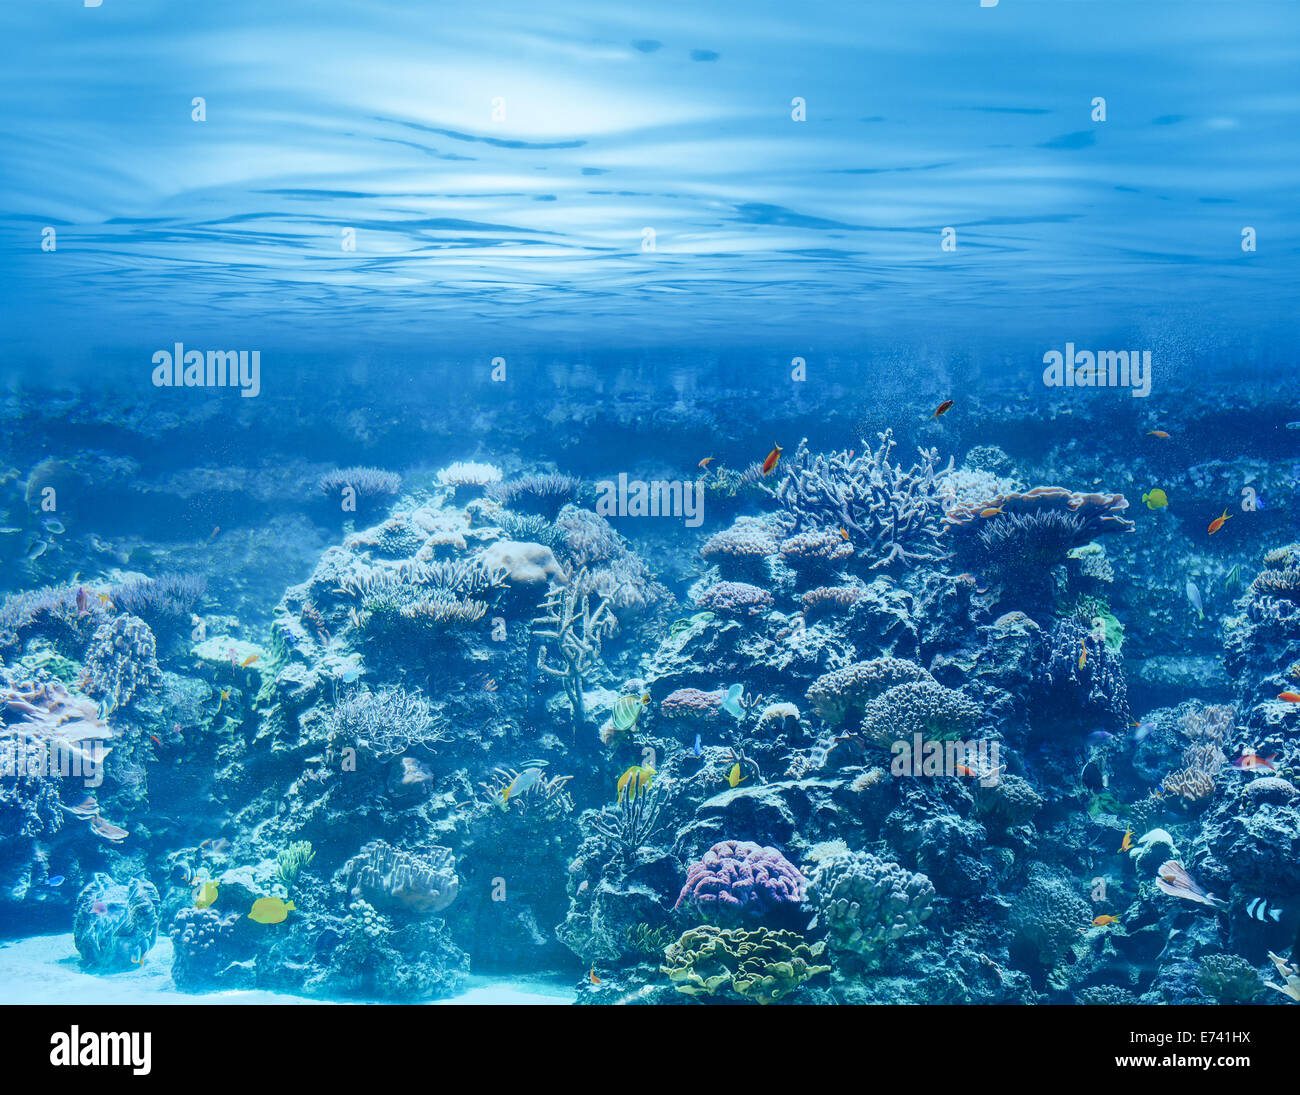 Sea or ocean underwater with coral reef and tropical fishes - Stock Image